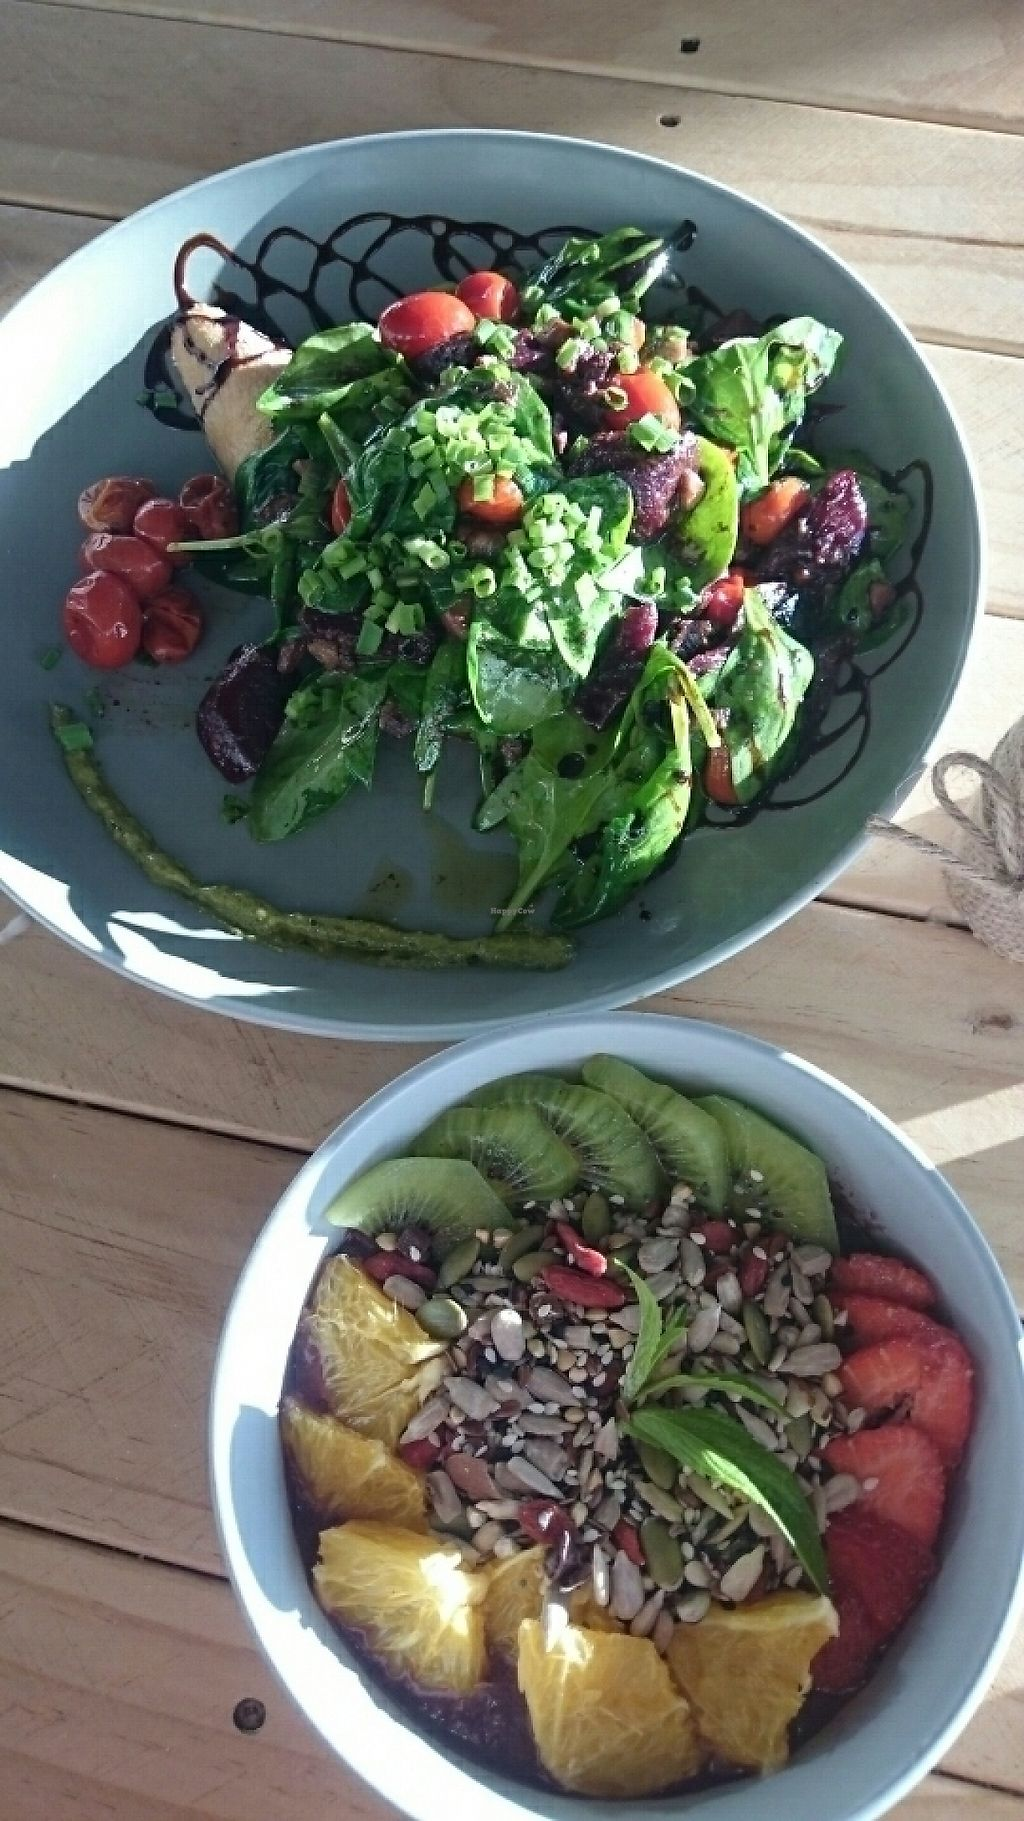 """Photo of Coco + Boho  by <a href=""""/members/profile/Cynthia1998"""">Cynthia1998</a> <br/>acai bowl and the roasted beetroot mushroom plate <br/> May 28, 2017  - <a href='/contact/abuse/image/92825/263250'>Report</a>"""